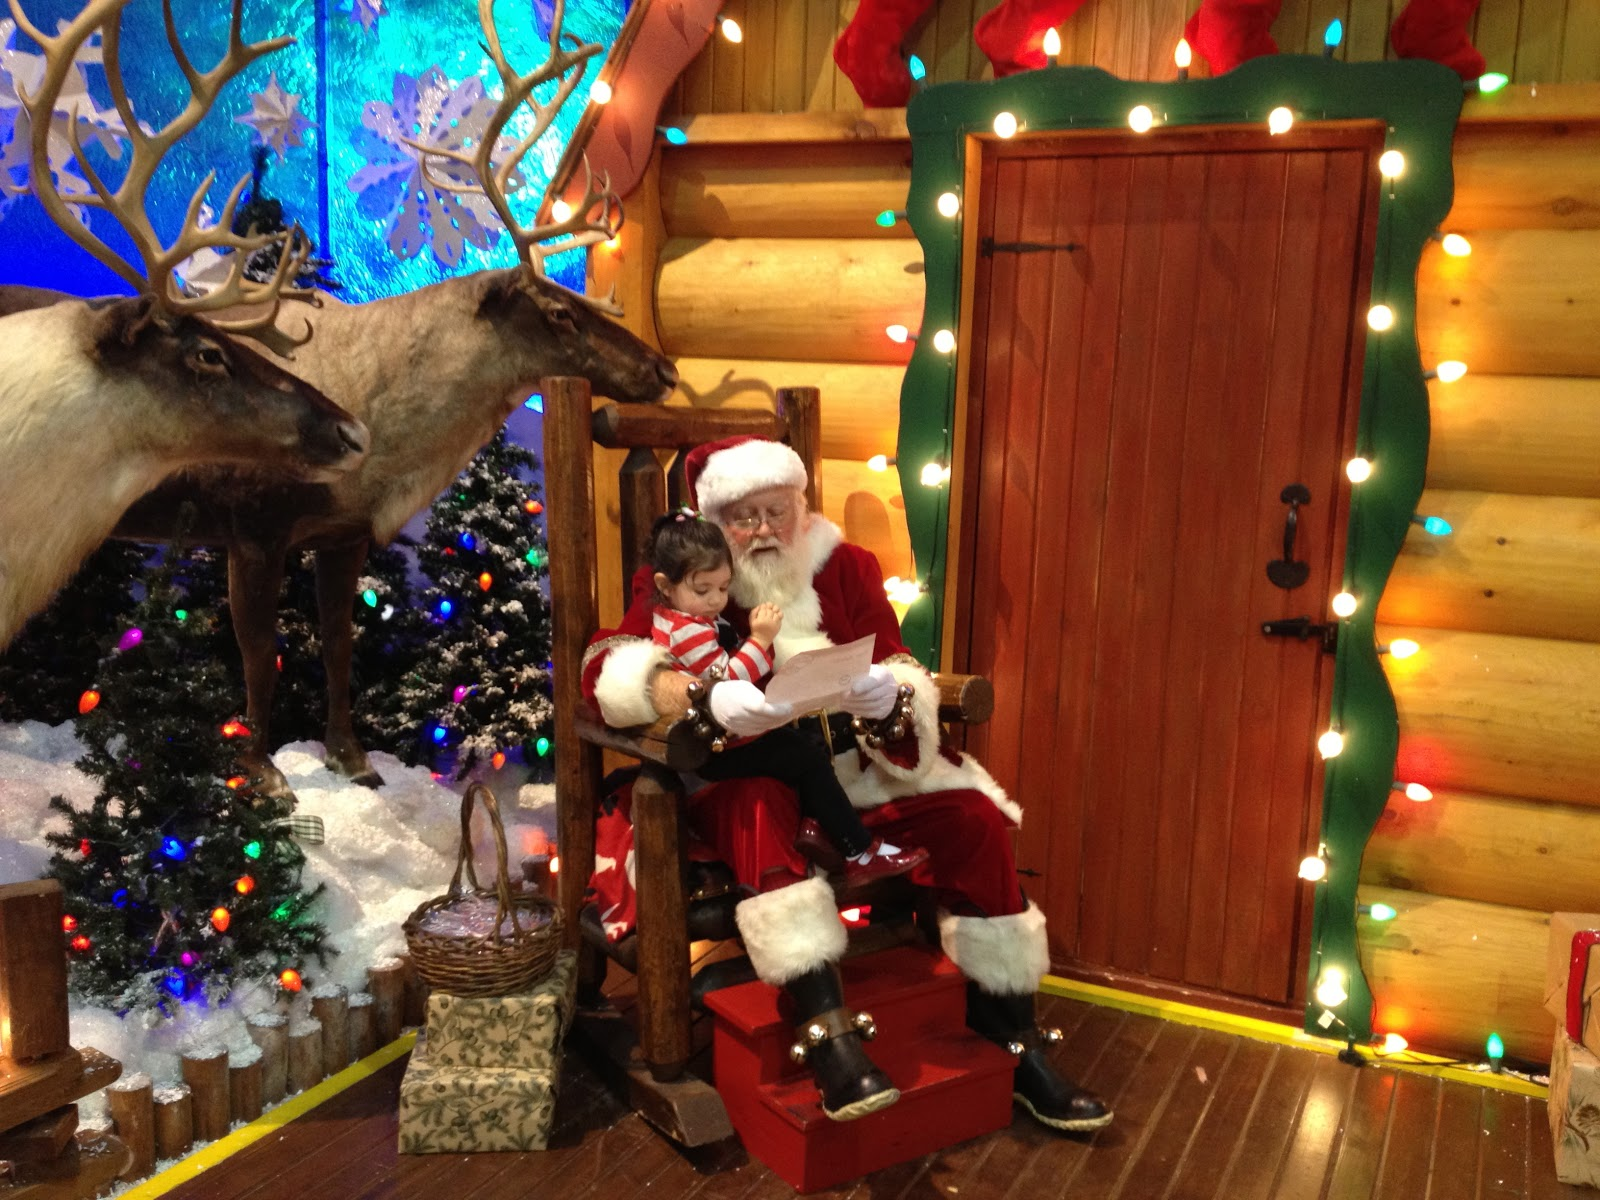 Savvy and Sassy: Free Photo With Santa at Bass Pro Shops